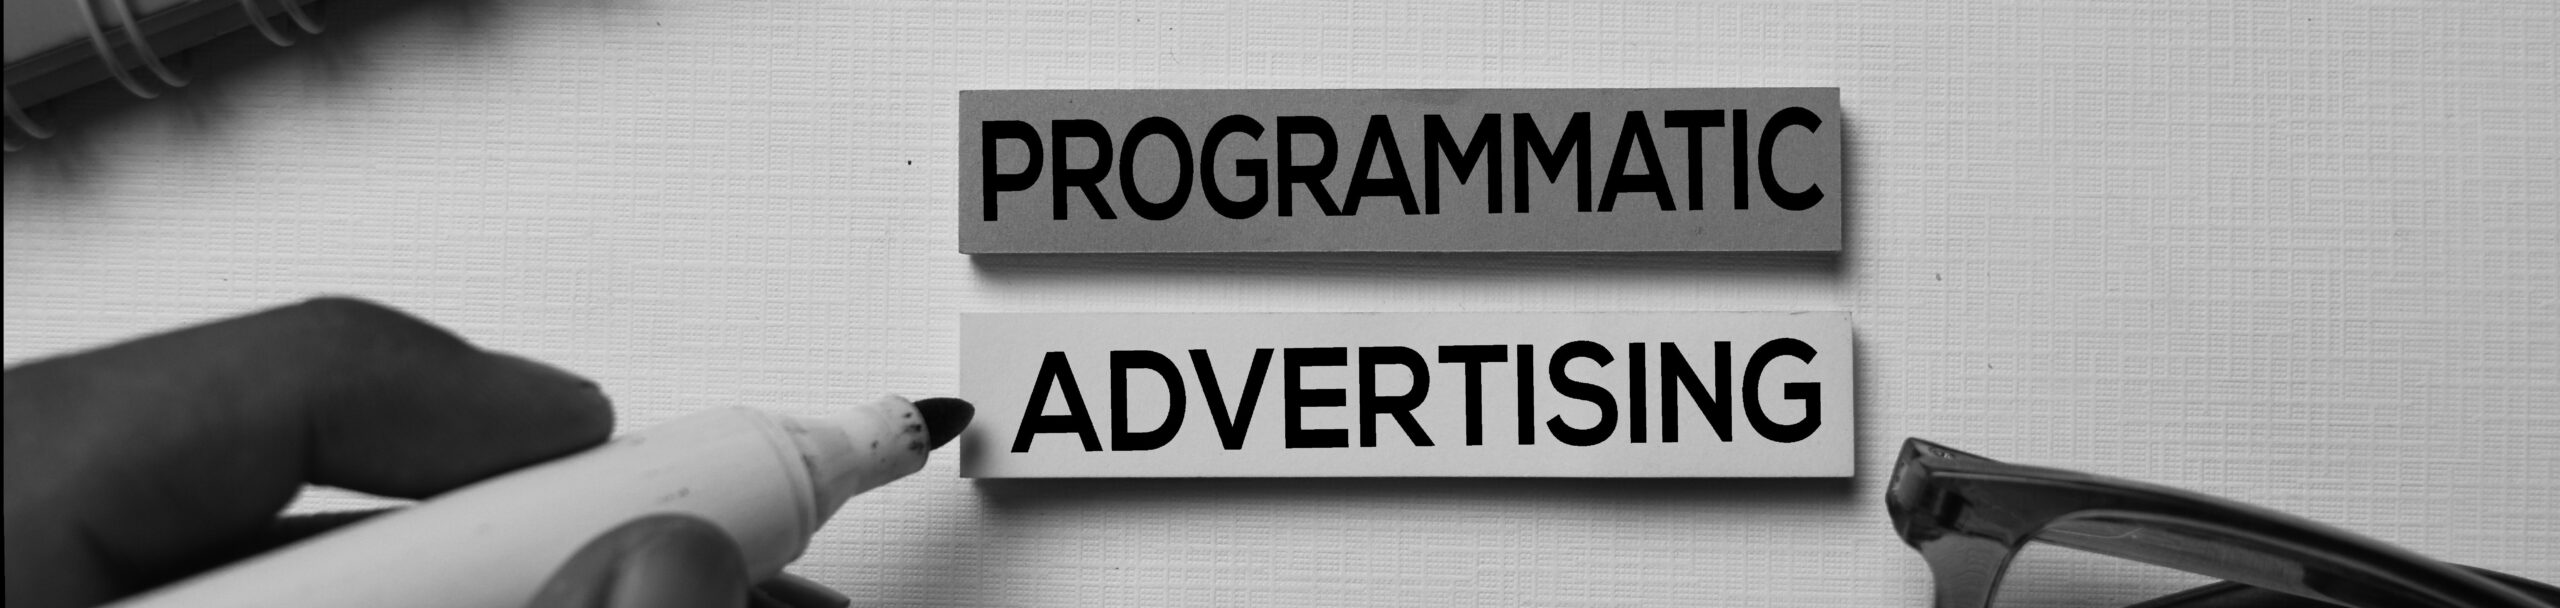 ¿Qué es Programmatic advertising y por qué ha revolucionado la publicidad  digital actual?